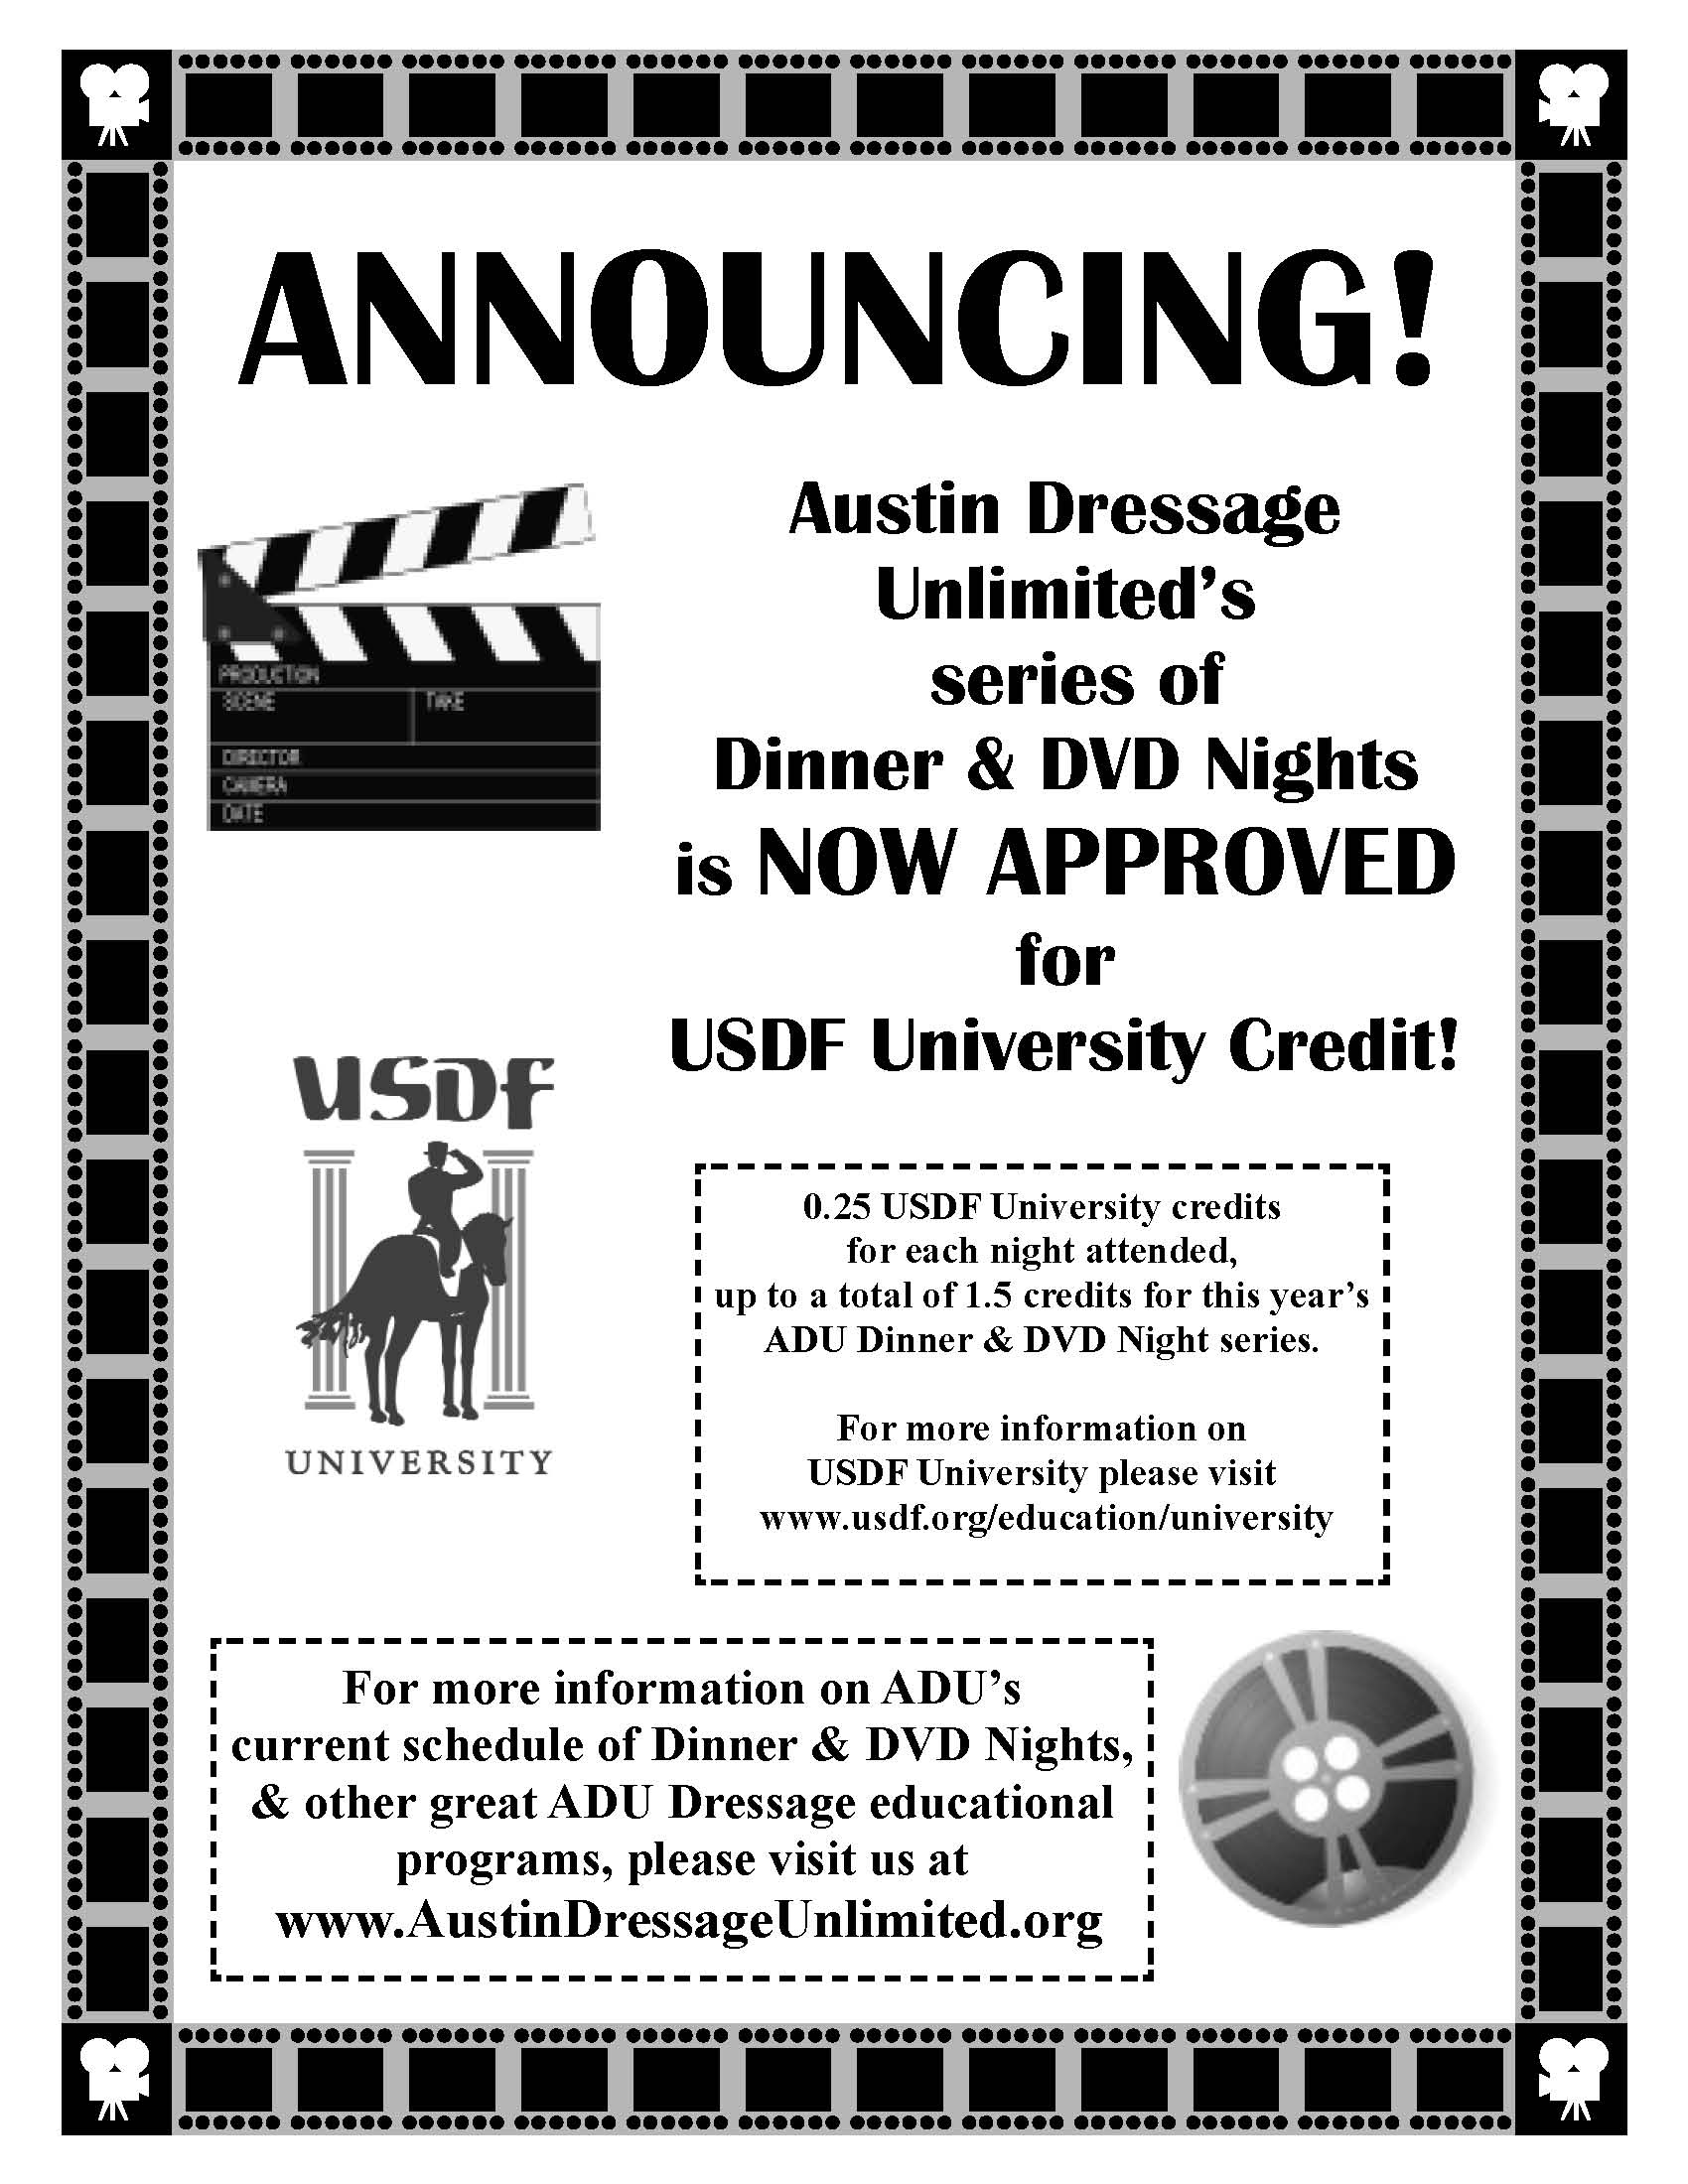 Austin Dressage Unlimited's Series of Dinner & DVD Nights is Approved for USDF University Credit